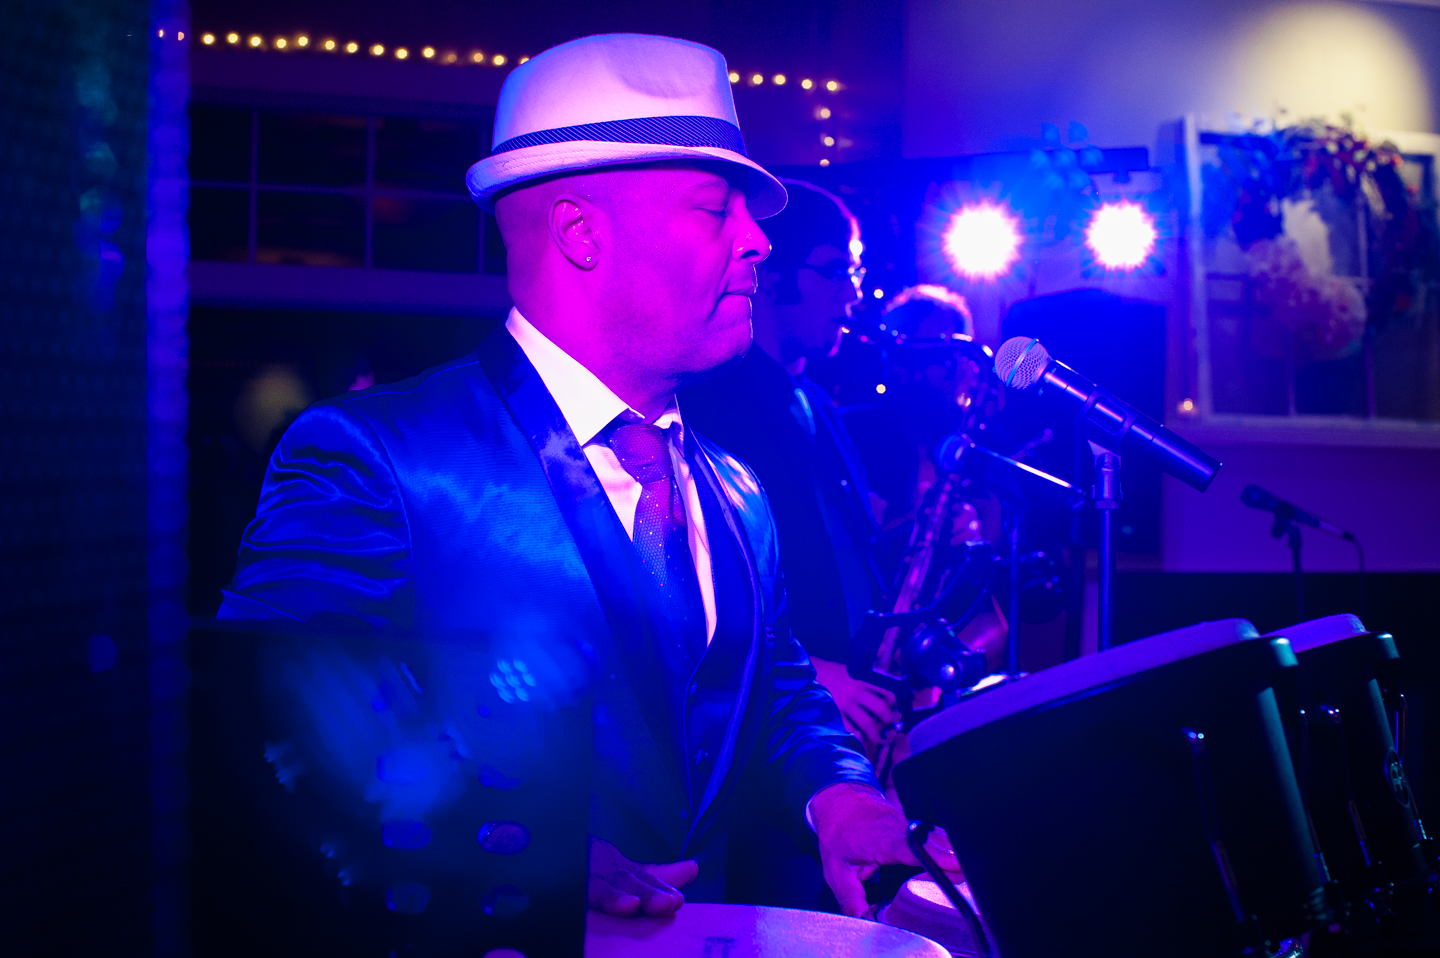 wedding band performing at country club wedding